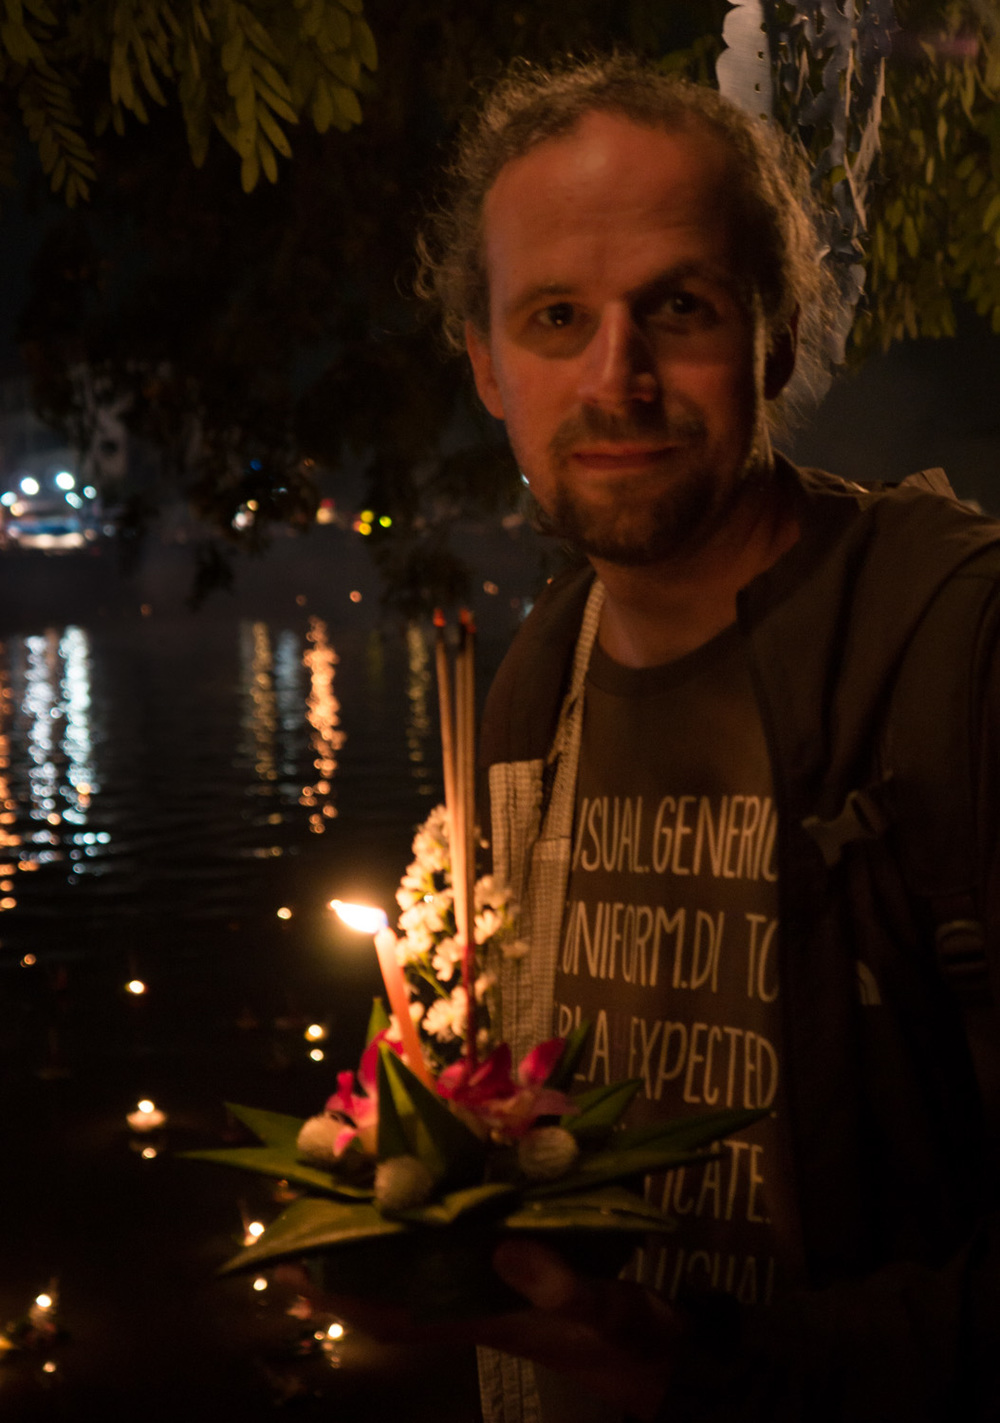 The krathong we placed in the river. Krathongs and sky lanterns symbolize the drifting away of bad luck and misfortune and signal a fresh start.